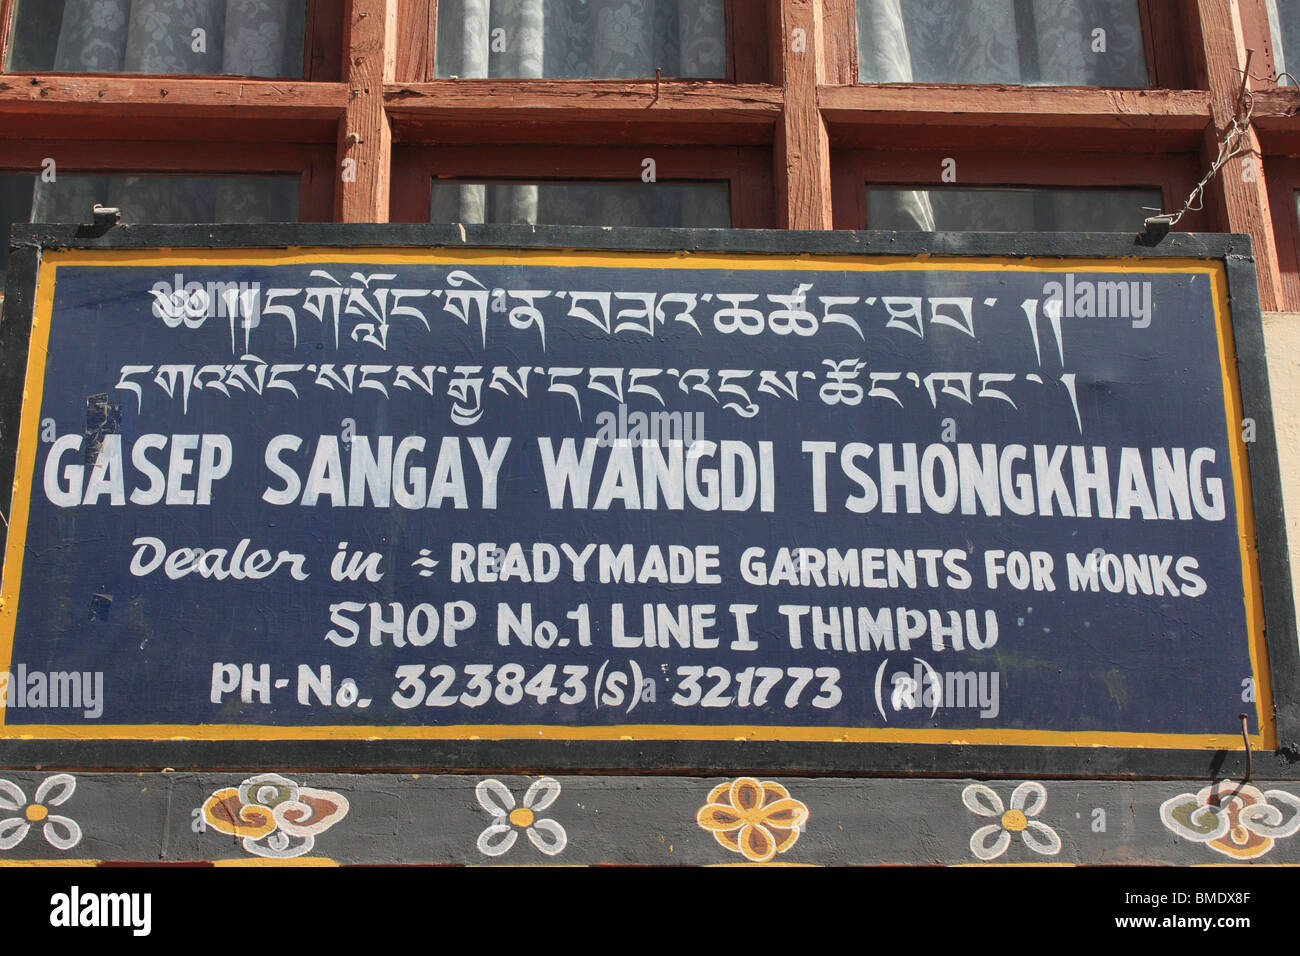 Sign for shop selling Ready made Garments for Monks, Thimphu, Bhutan - Stock Image